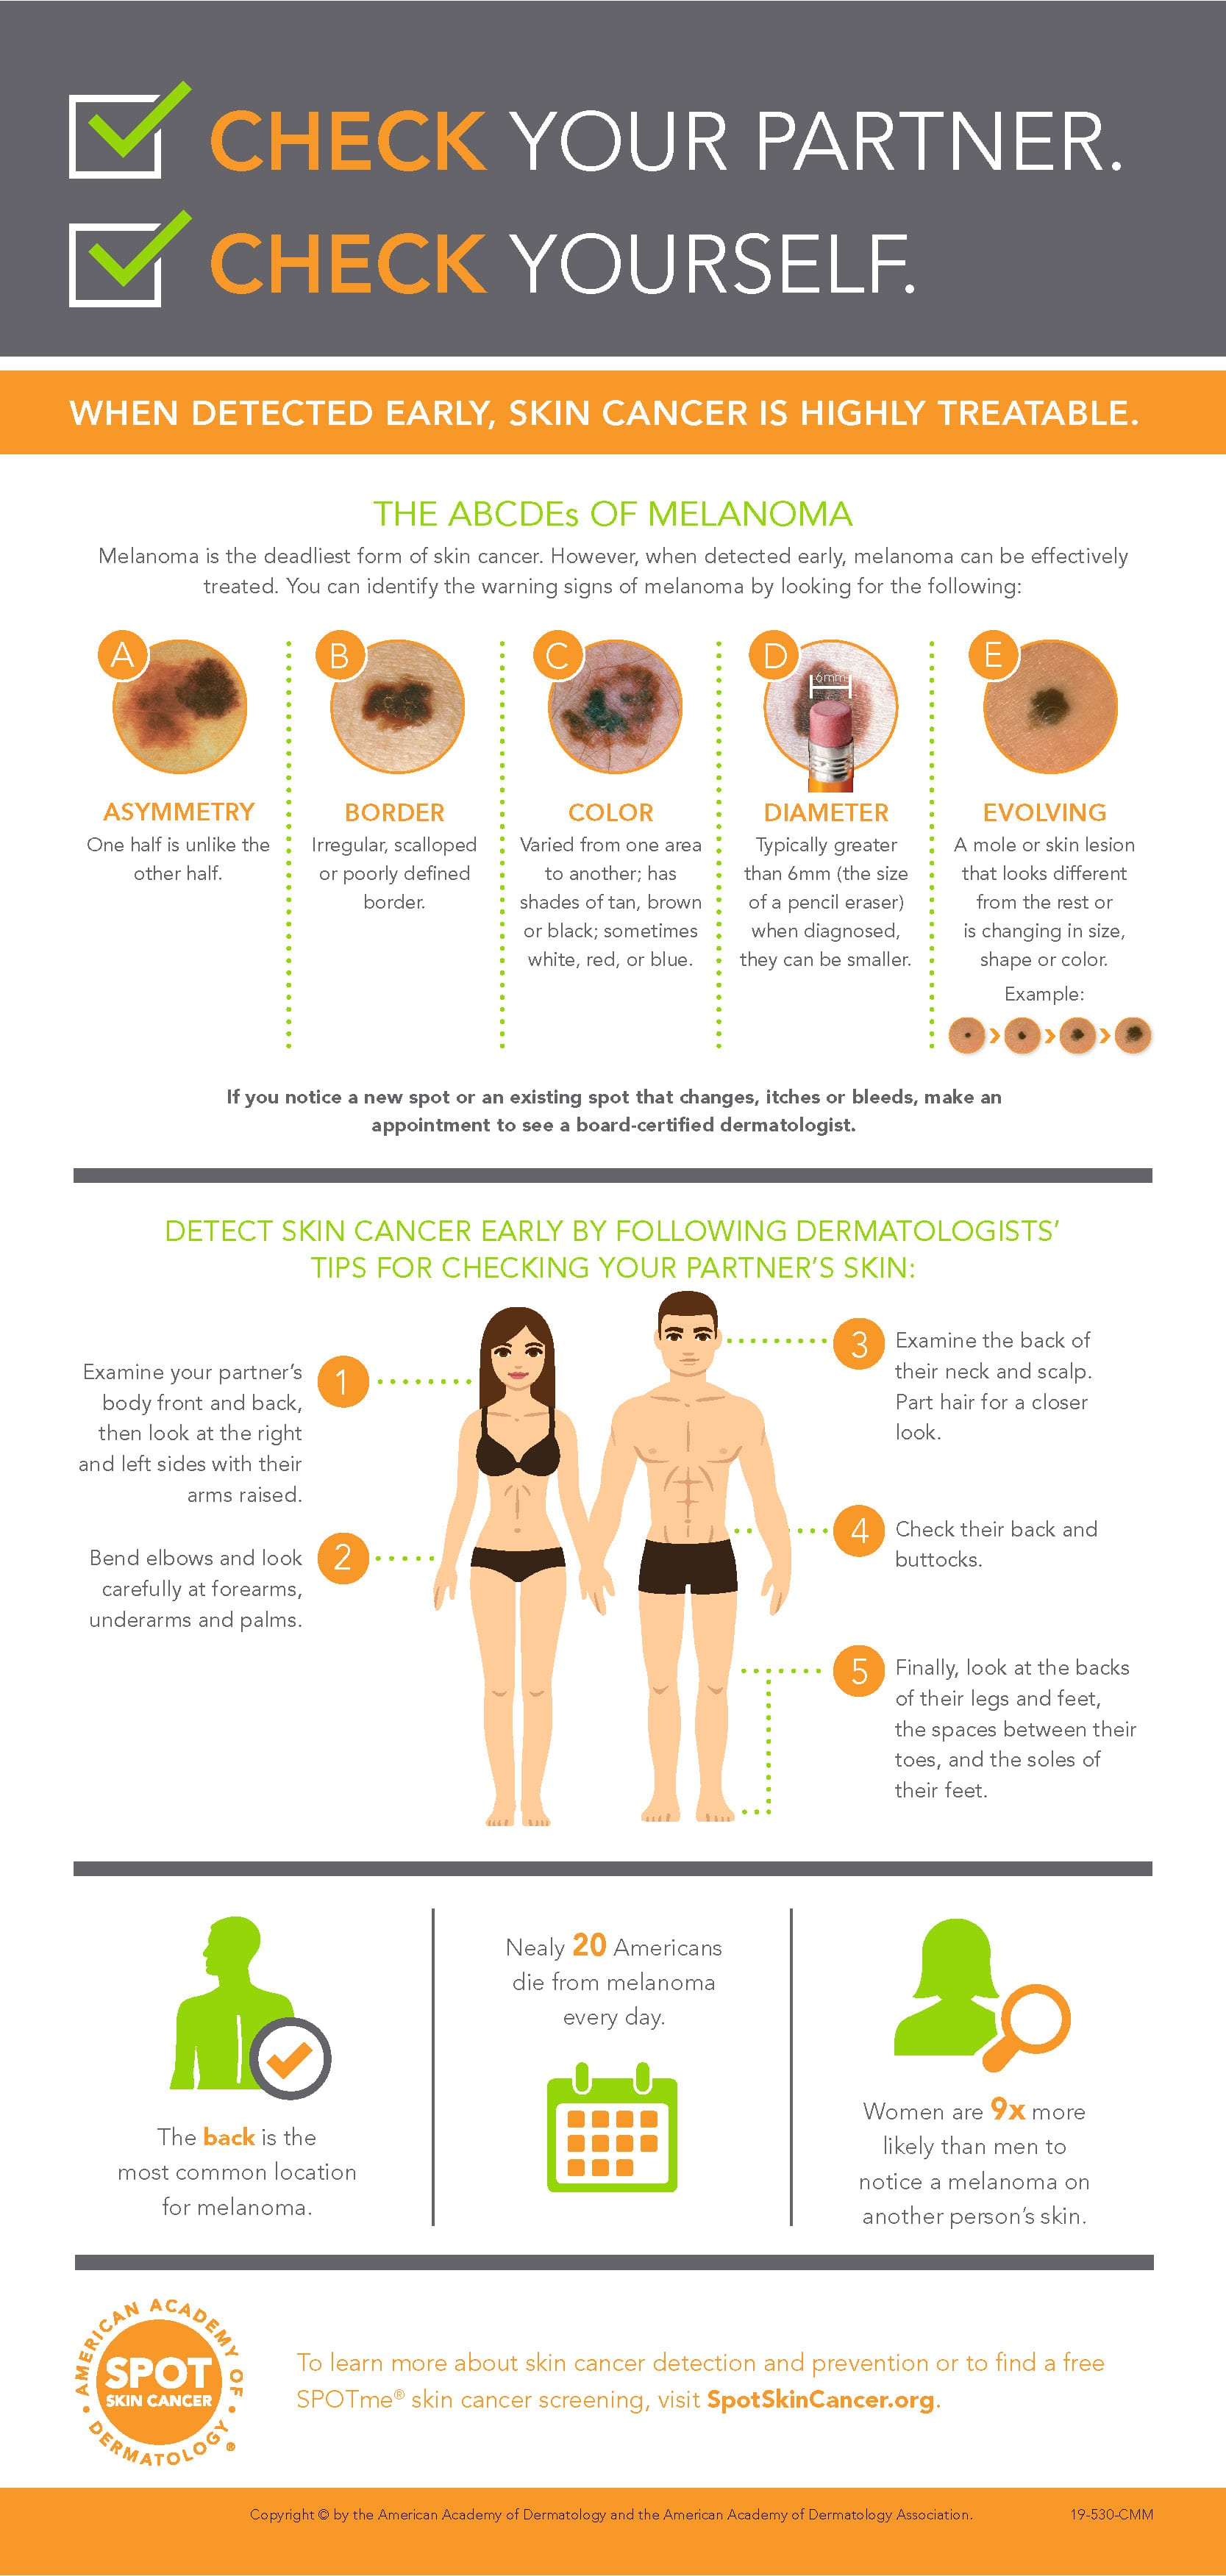 Dermatology Tips - Check Your Partner